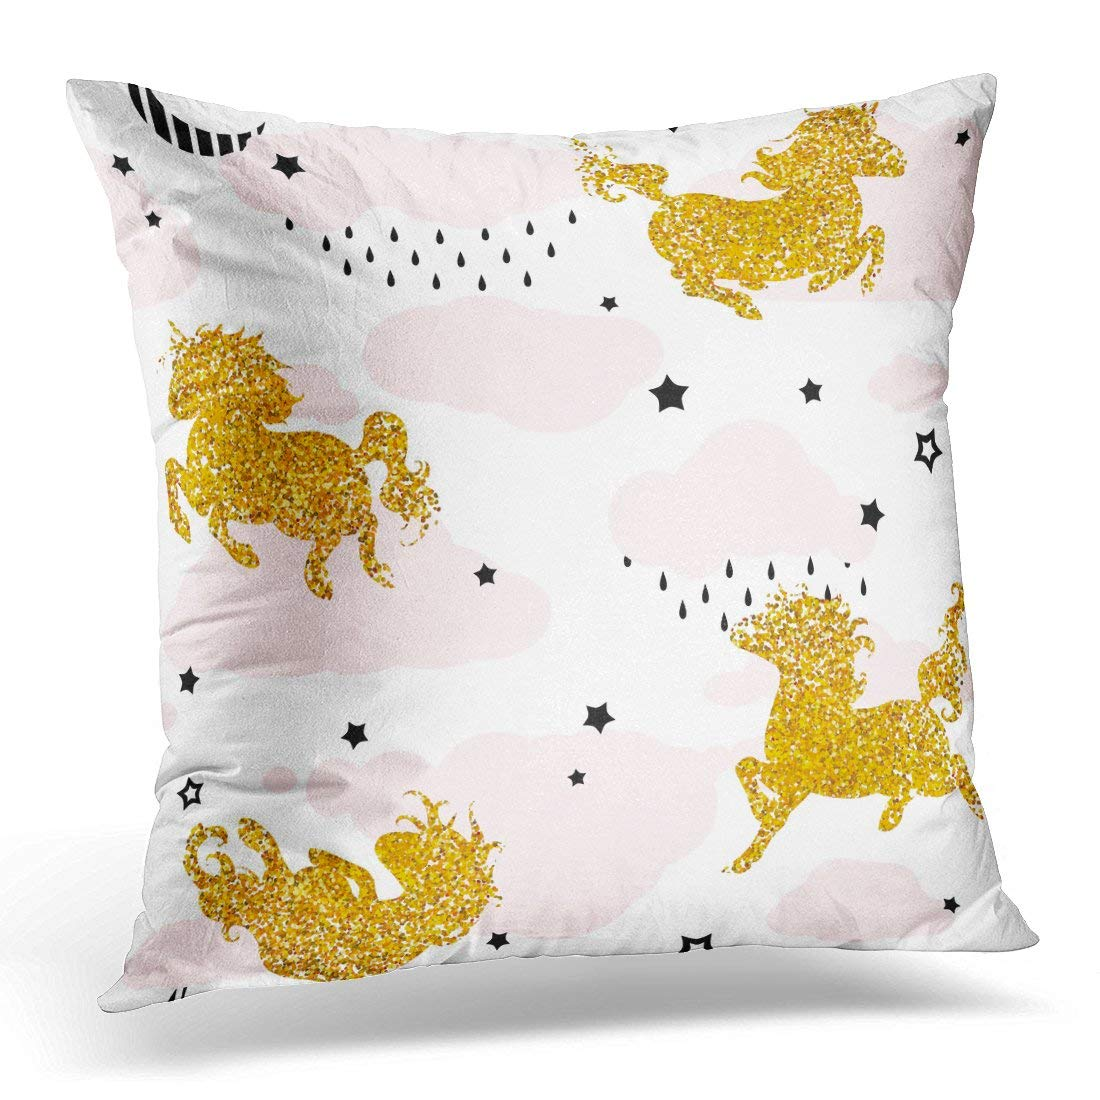 CMFUN Patterns with Cute Baby Unicorns Happy Birthday Children Colorful Night Sky with Stars Clouds Gold Doodle Pillow Case Pillow Cover 18x18 inch